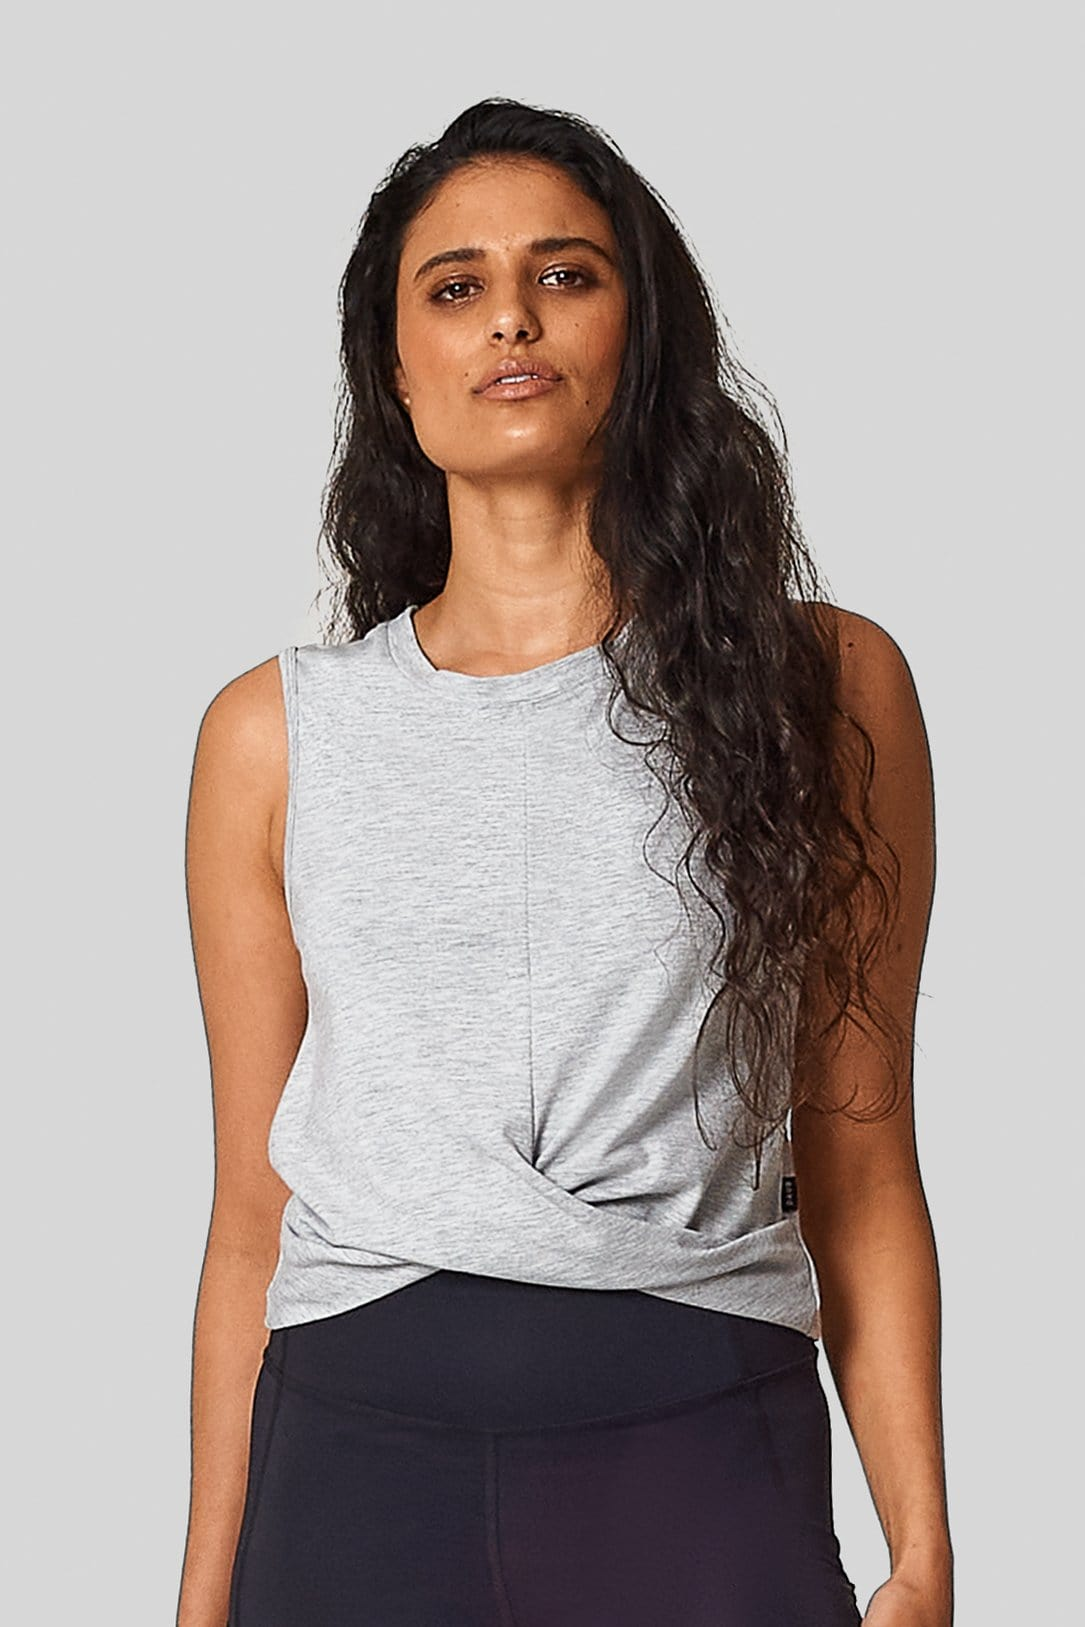 A woman wears a sleeveless tank in light heather grey that crosses over at lower centre front. Worn with black pocket leggings.